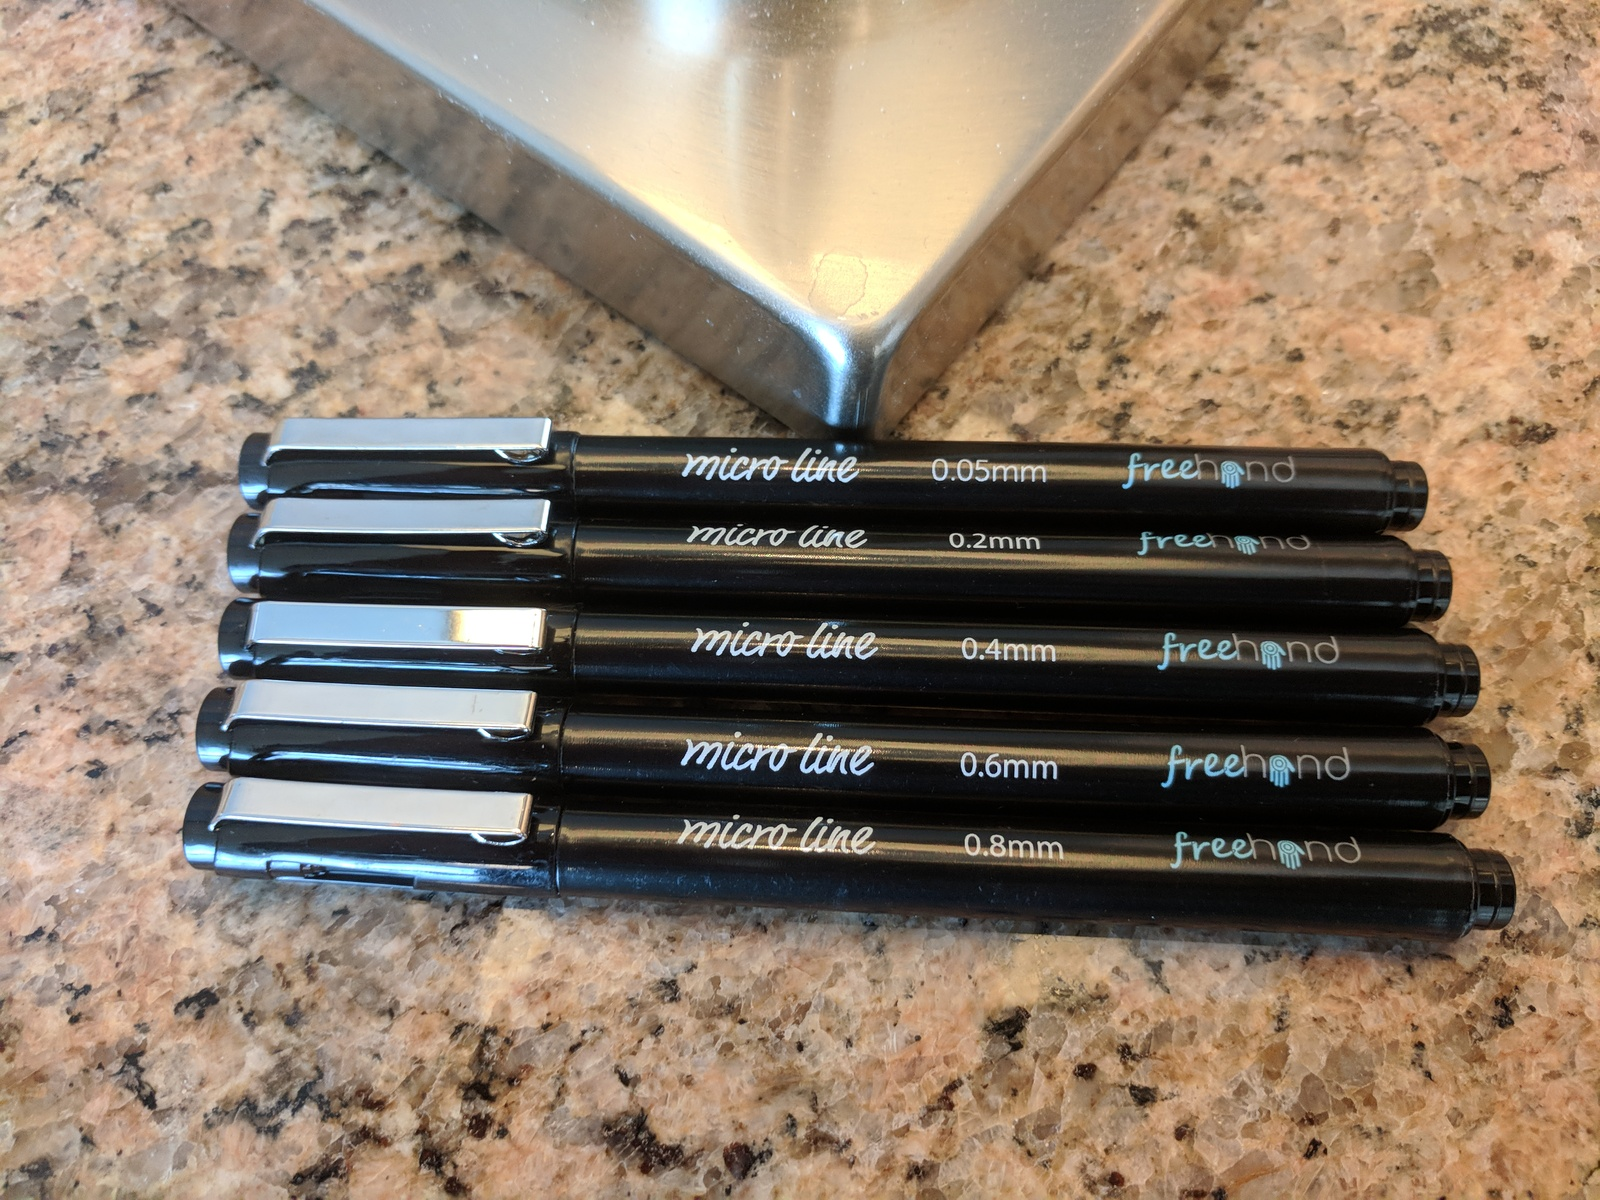 Great set of pens.